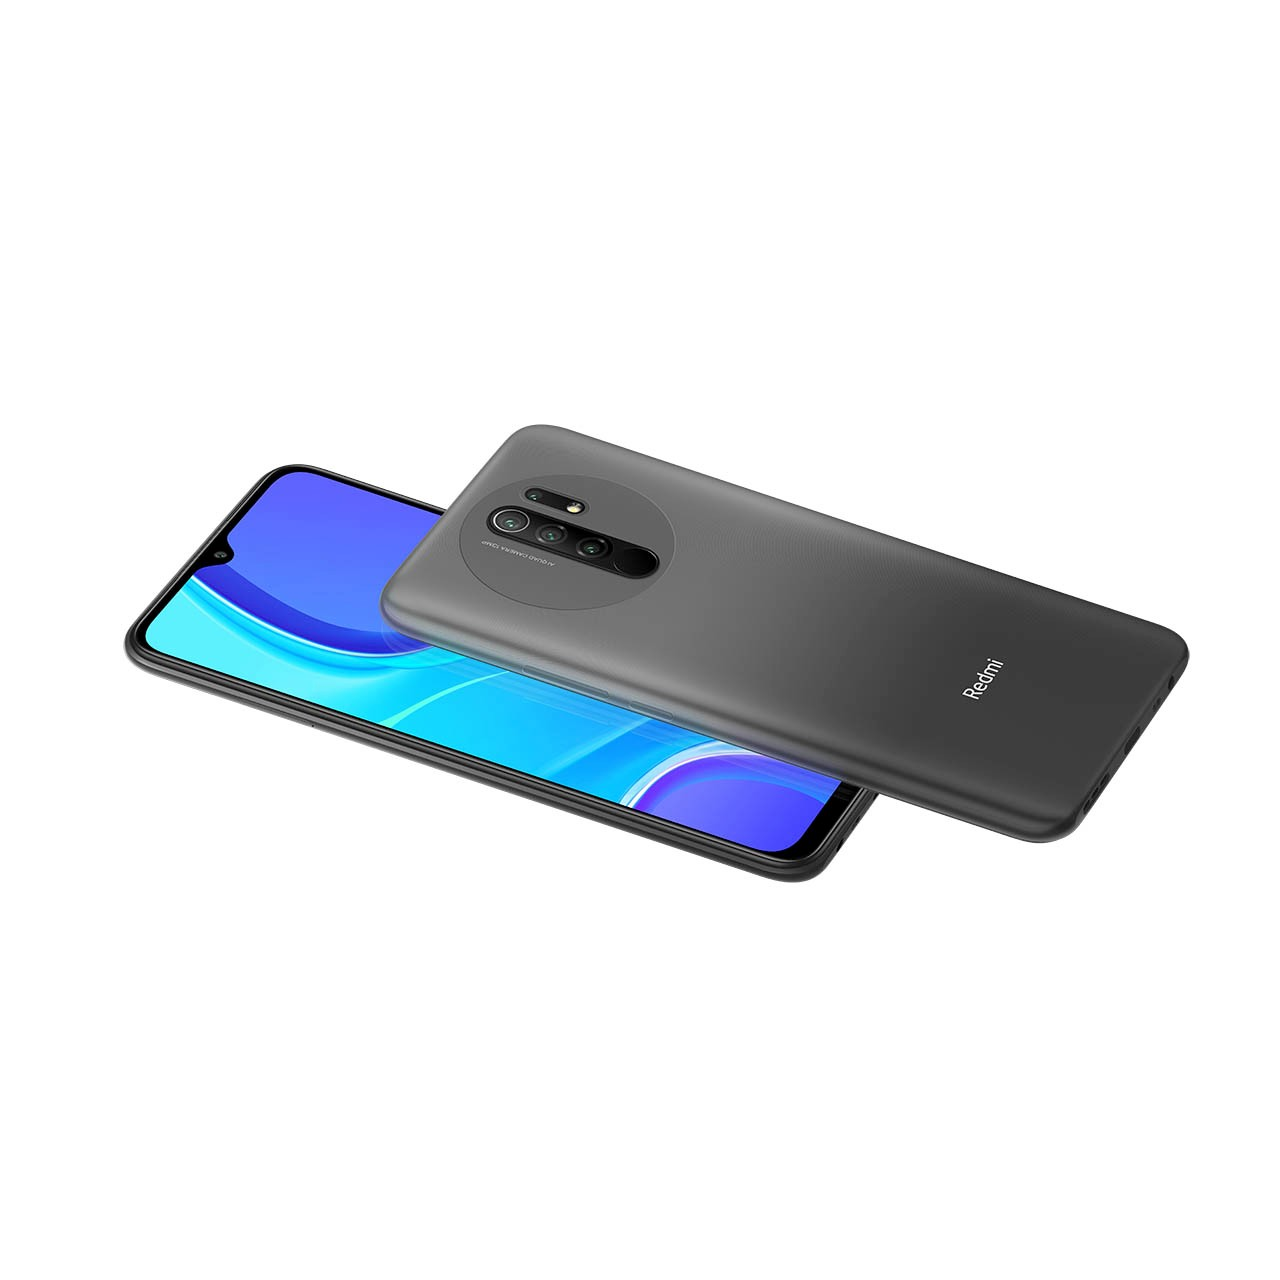 Image of Xiaomi Redmi 9 3GB/32GB Dual Sim - Carbon Grey (International Ver.)